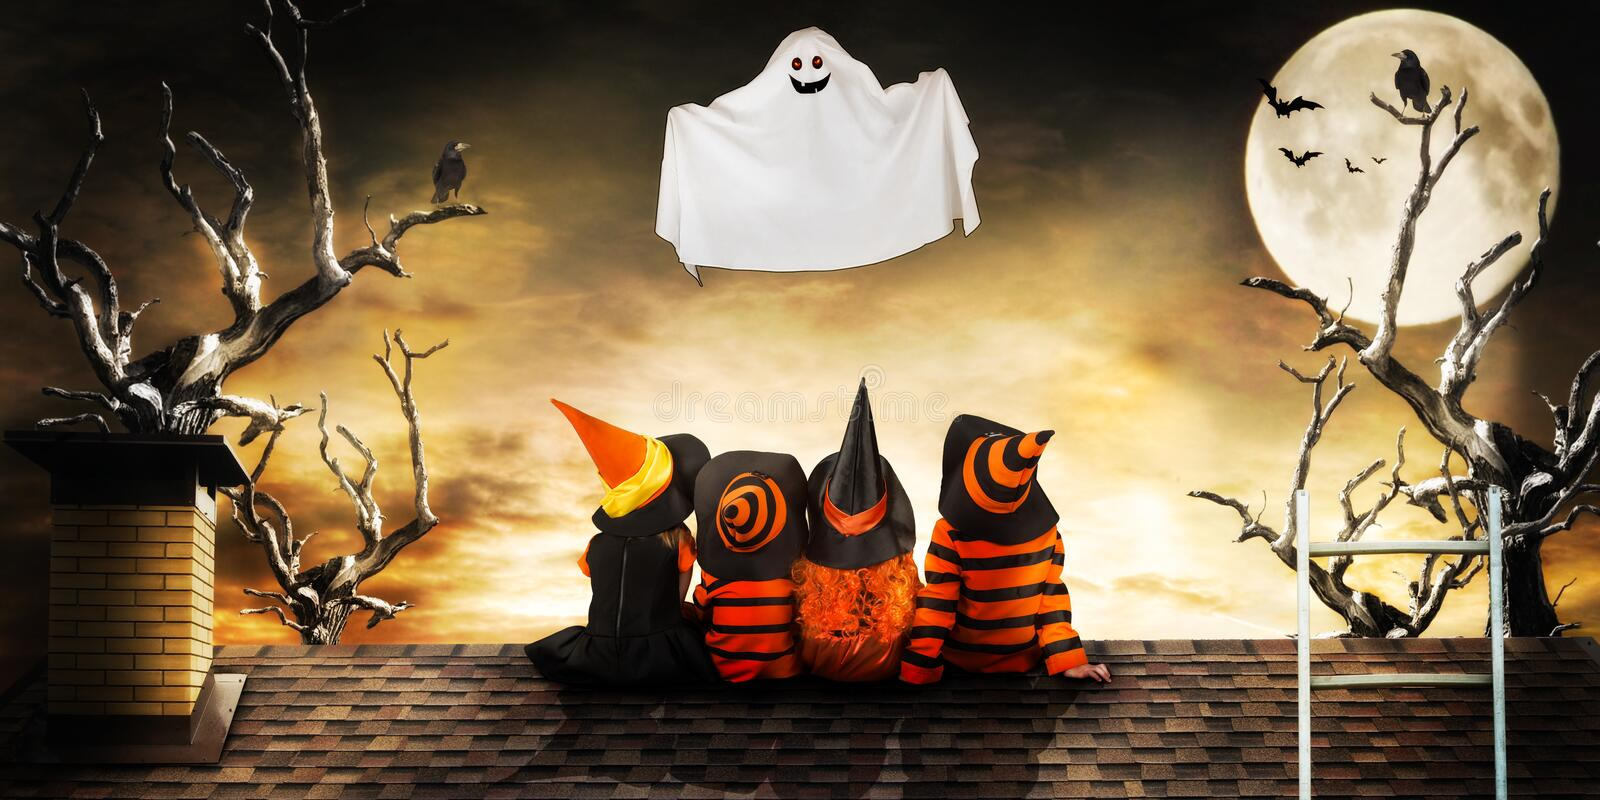 Halloween.Children in costumes of witches and wizard at night sit on the roof look at the flying ghost. stock images